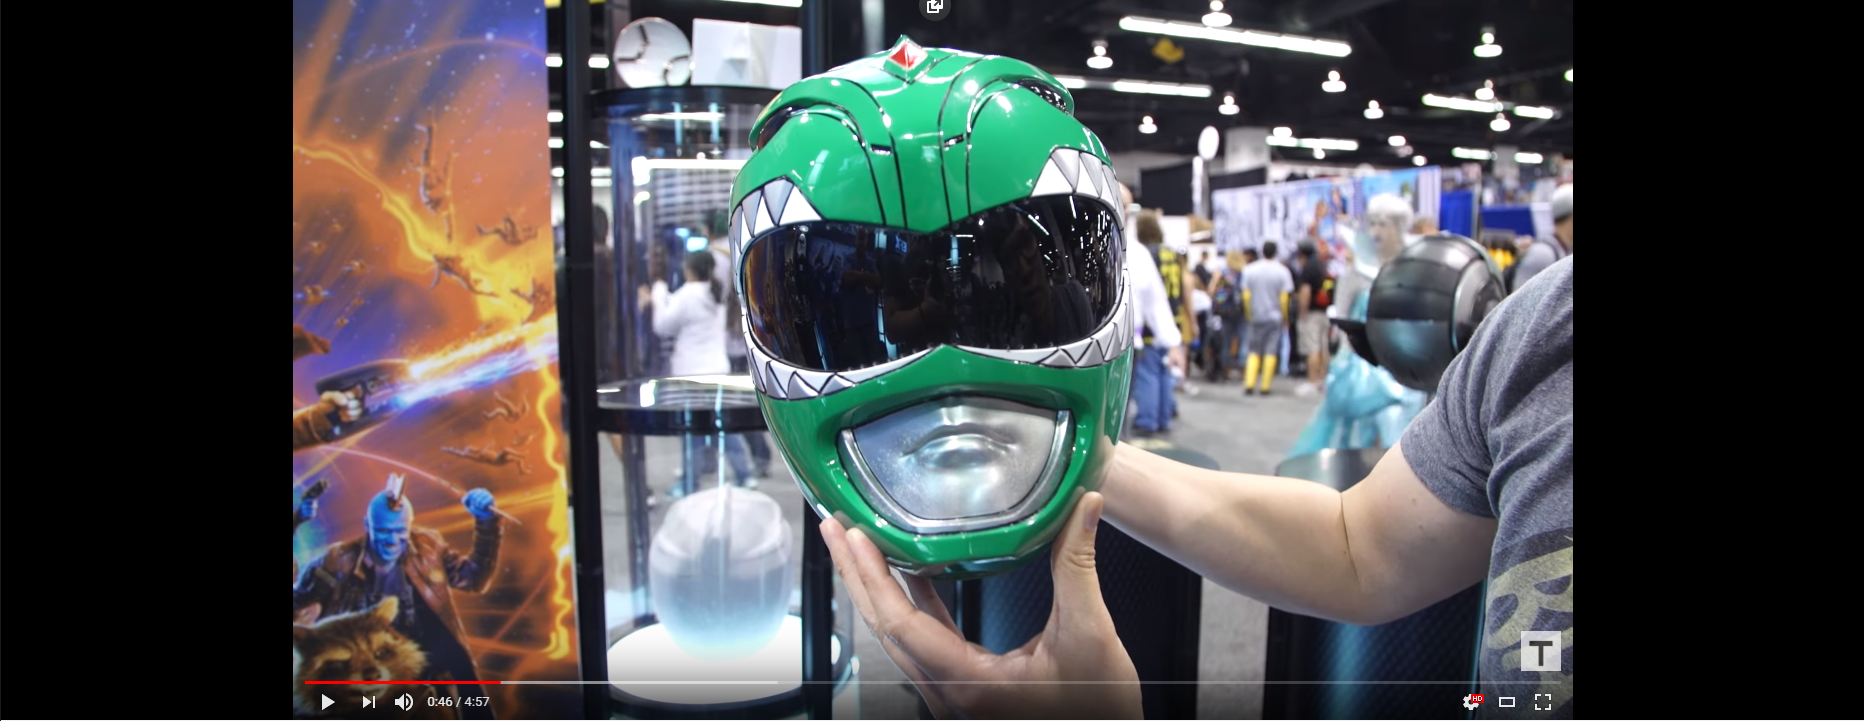 2019-06-29 19_39_37-Original Power Rangers Helmet Prop! - YouTube - Opera.png